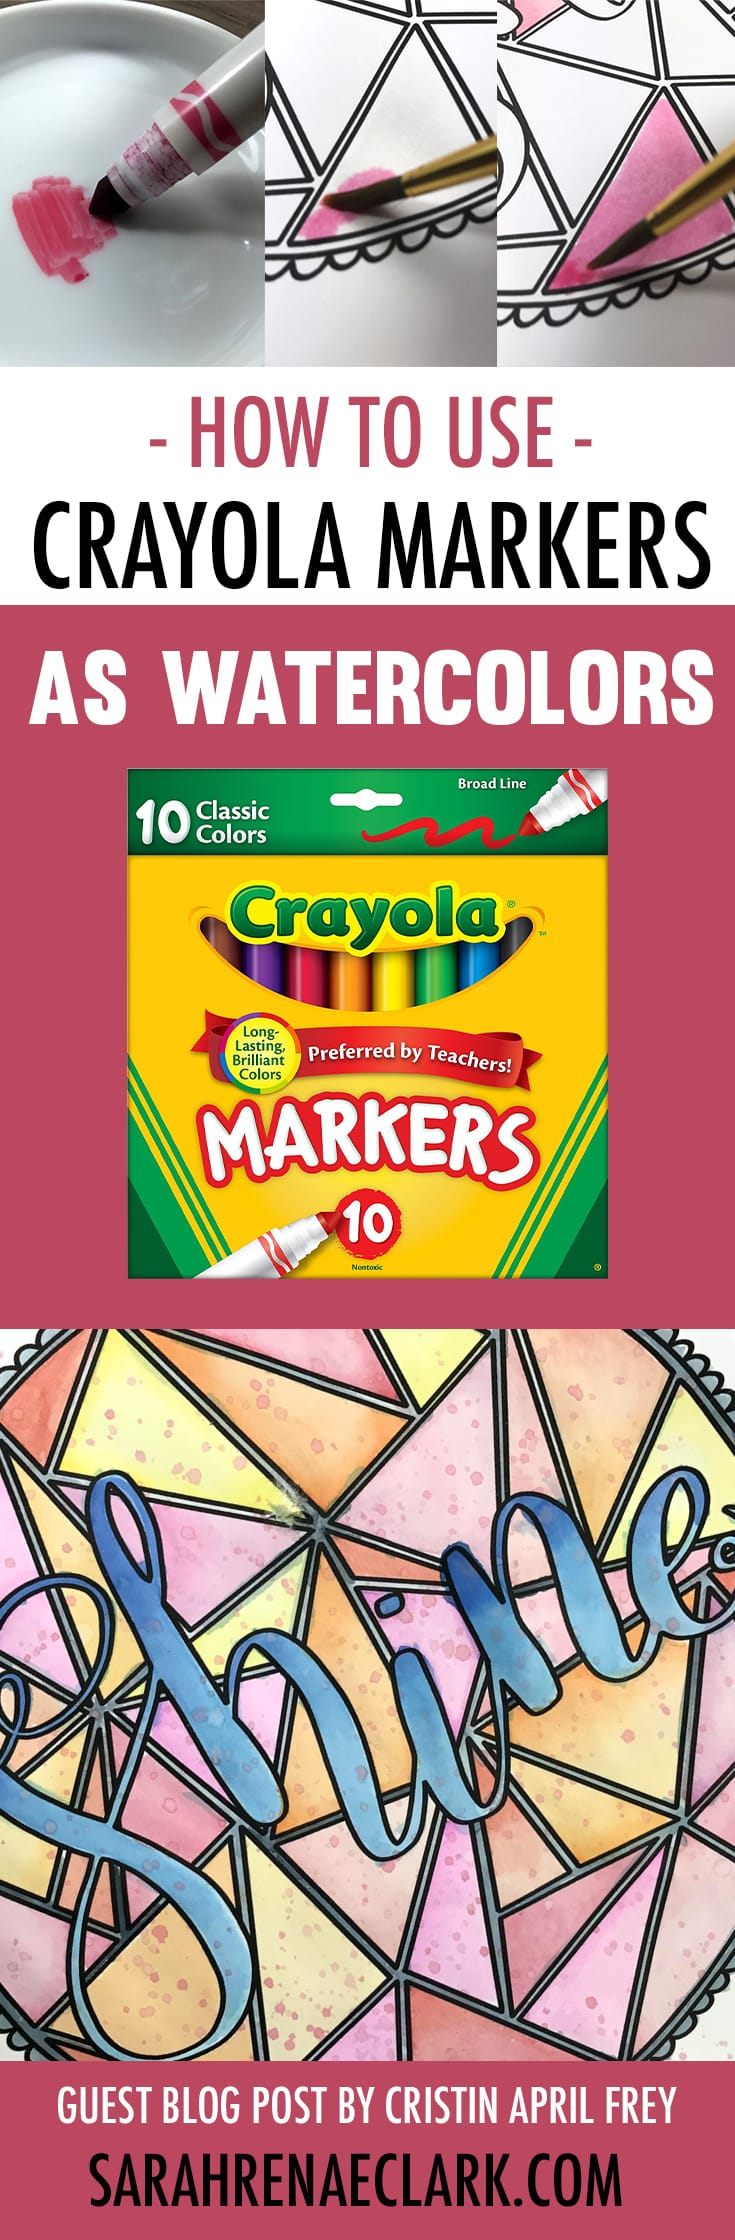 How To Use Crayola Markers As Watercolors Crayola Coloring Tutorial